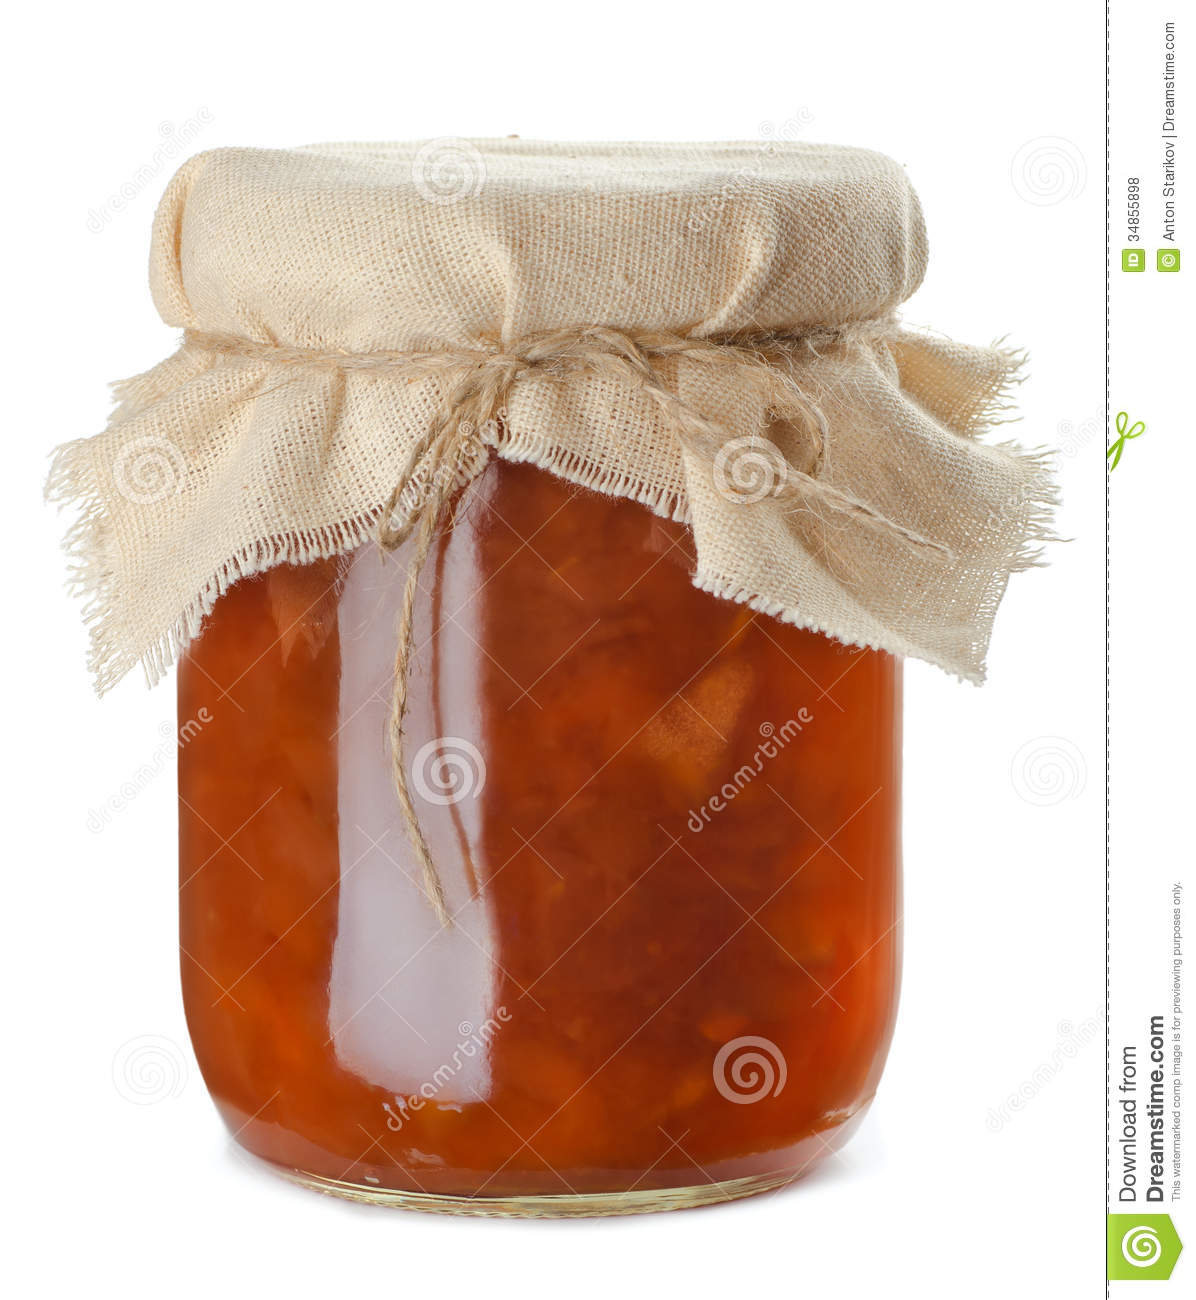 Apple Jam Royalty Free Stock Photos - Image: 34855898